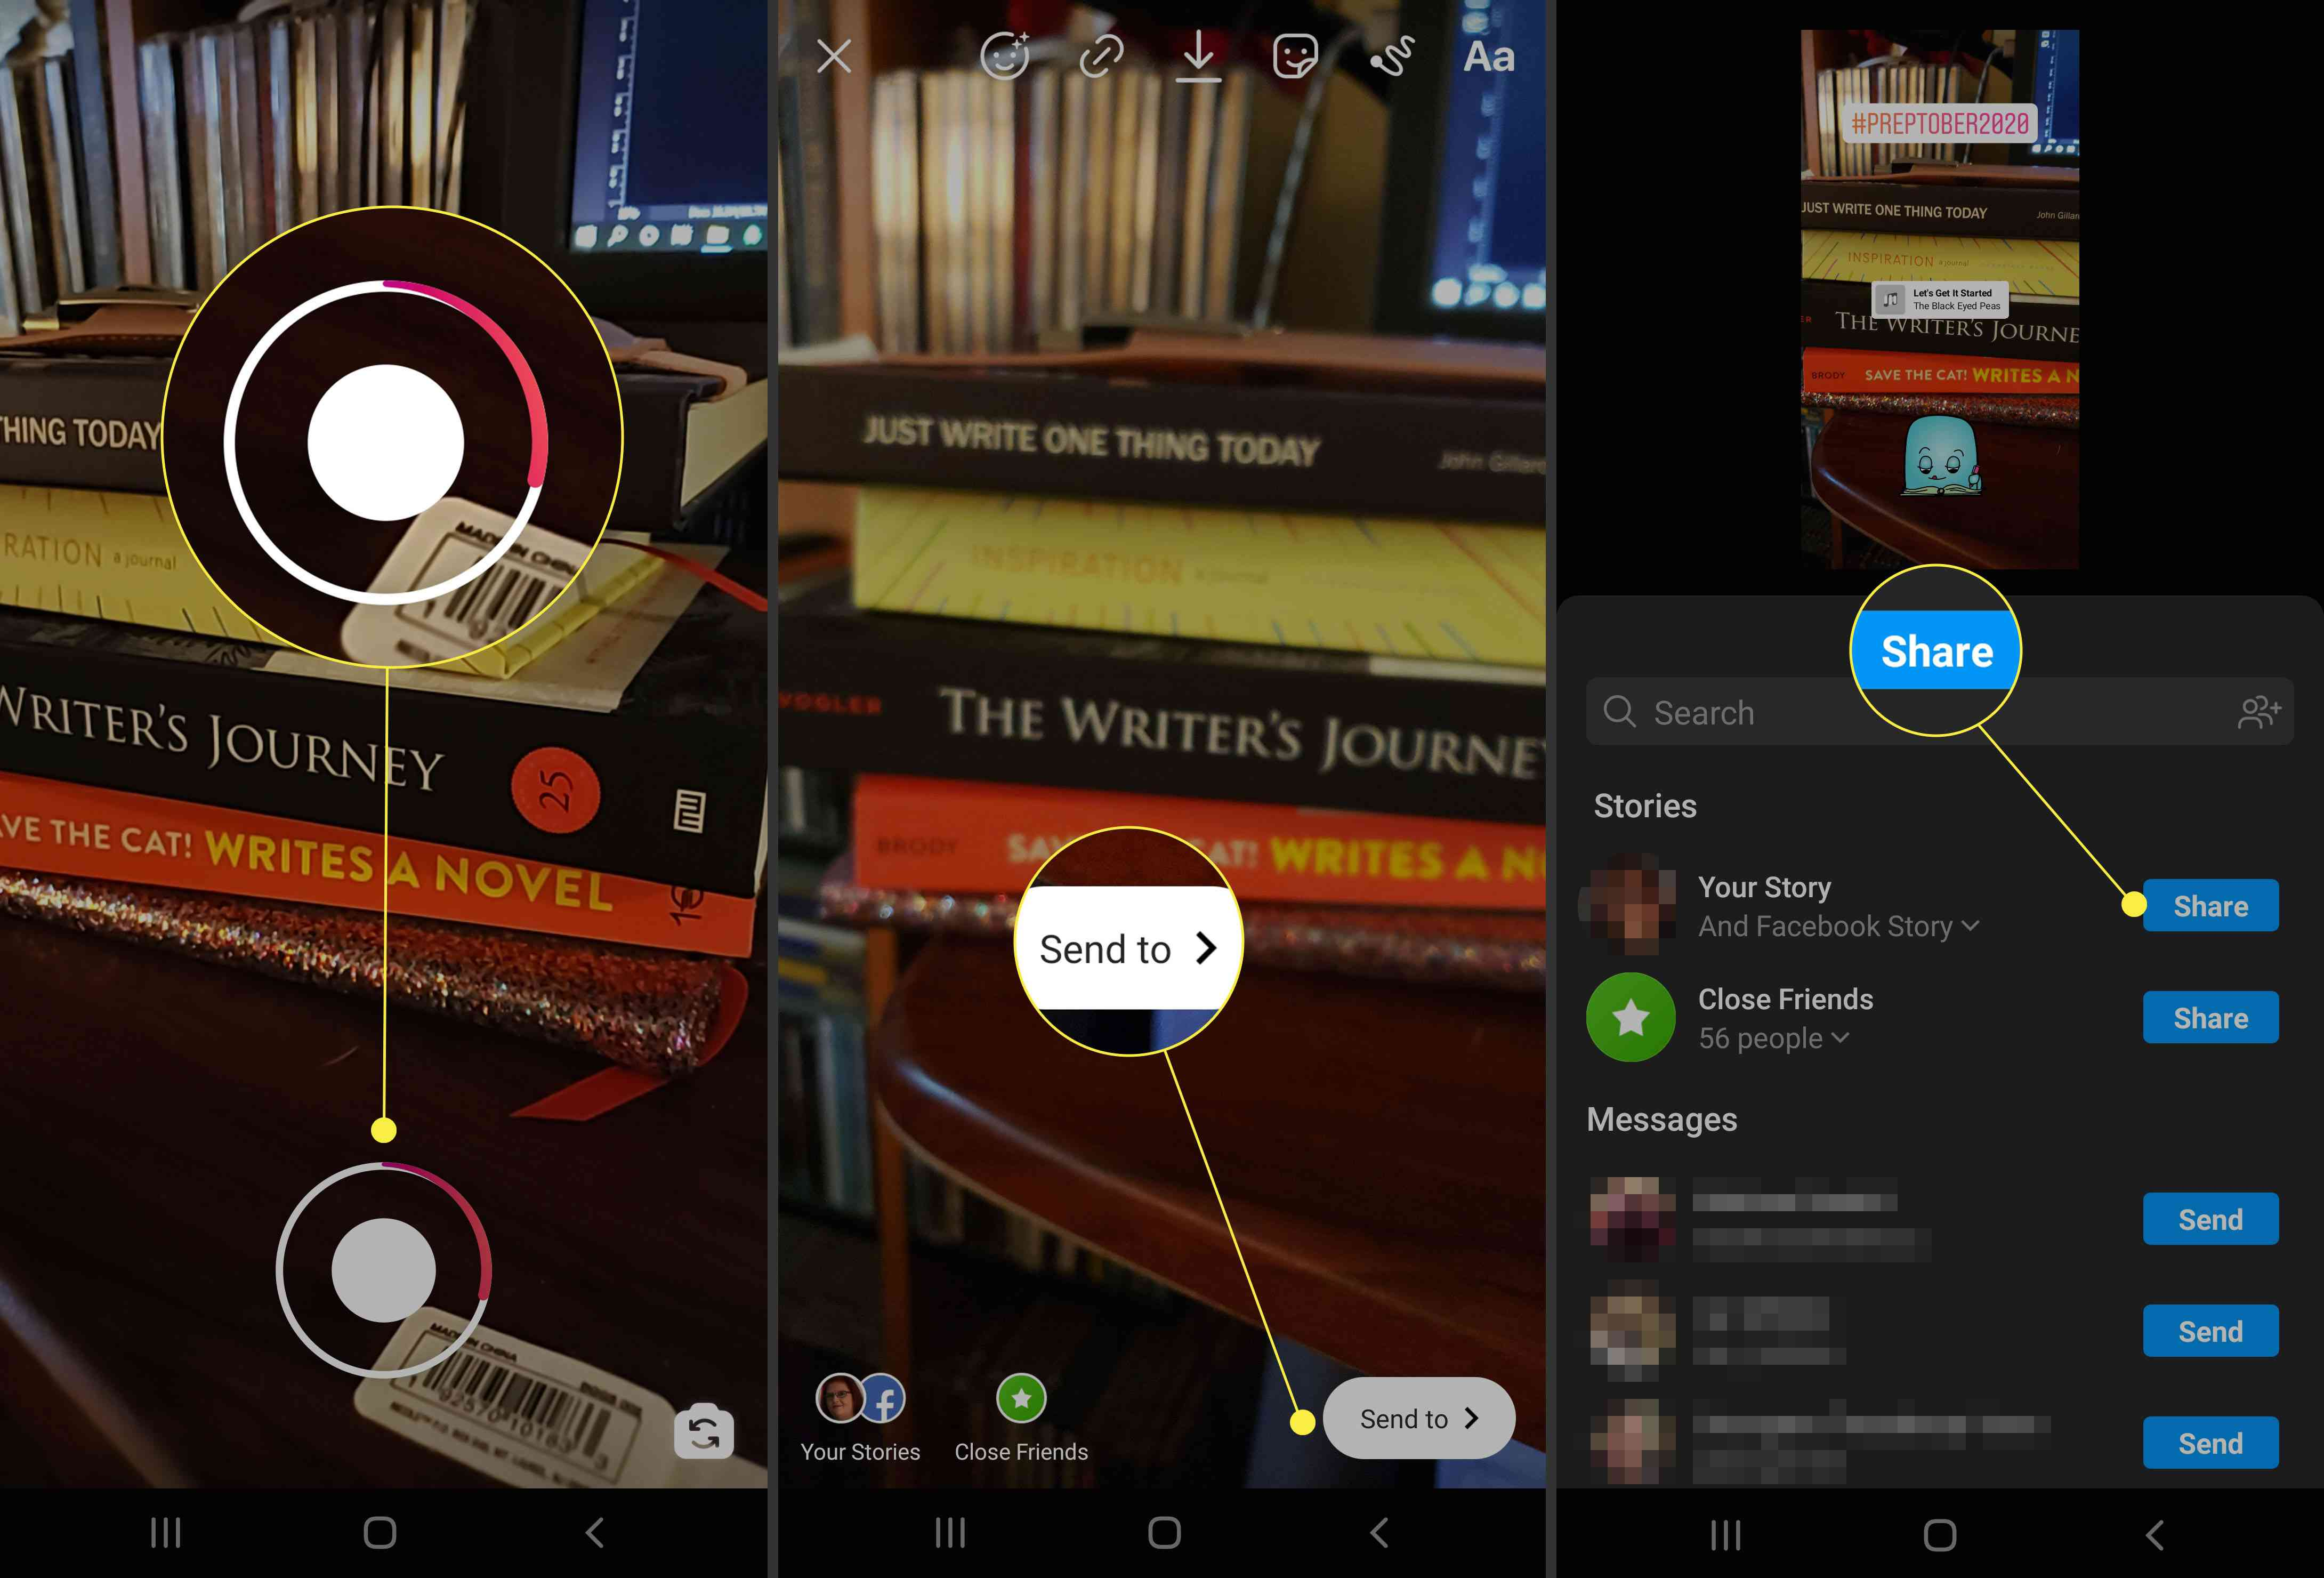 Adding music the old way in Instagram.